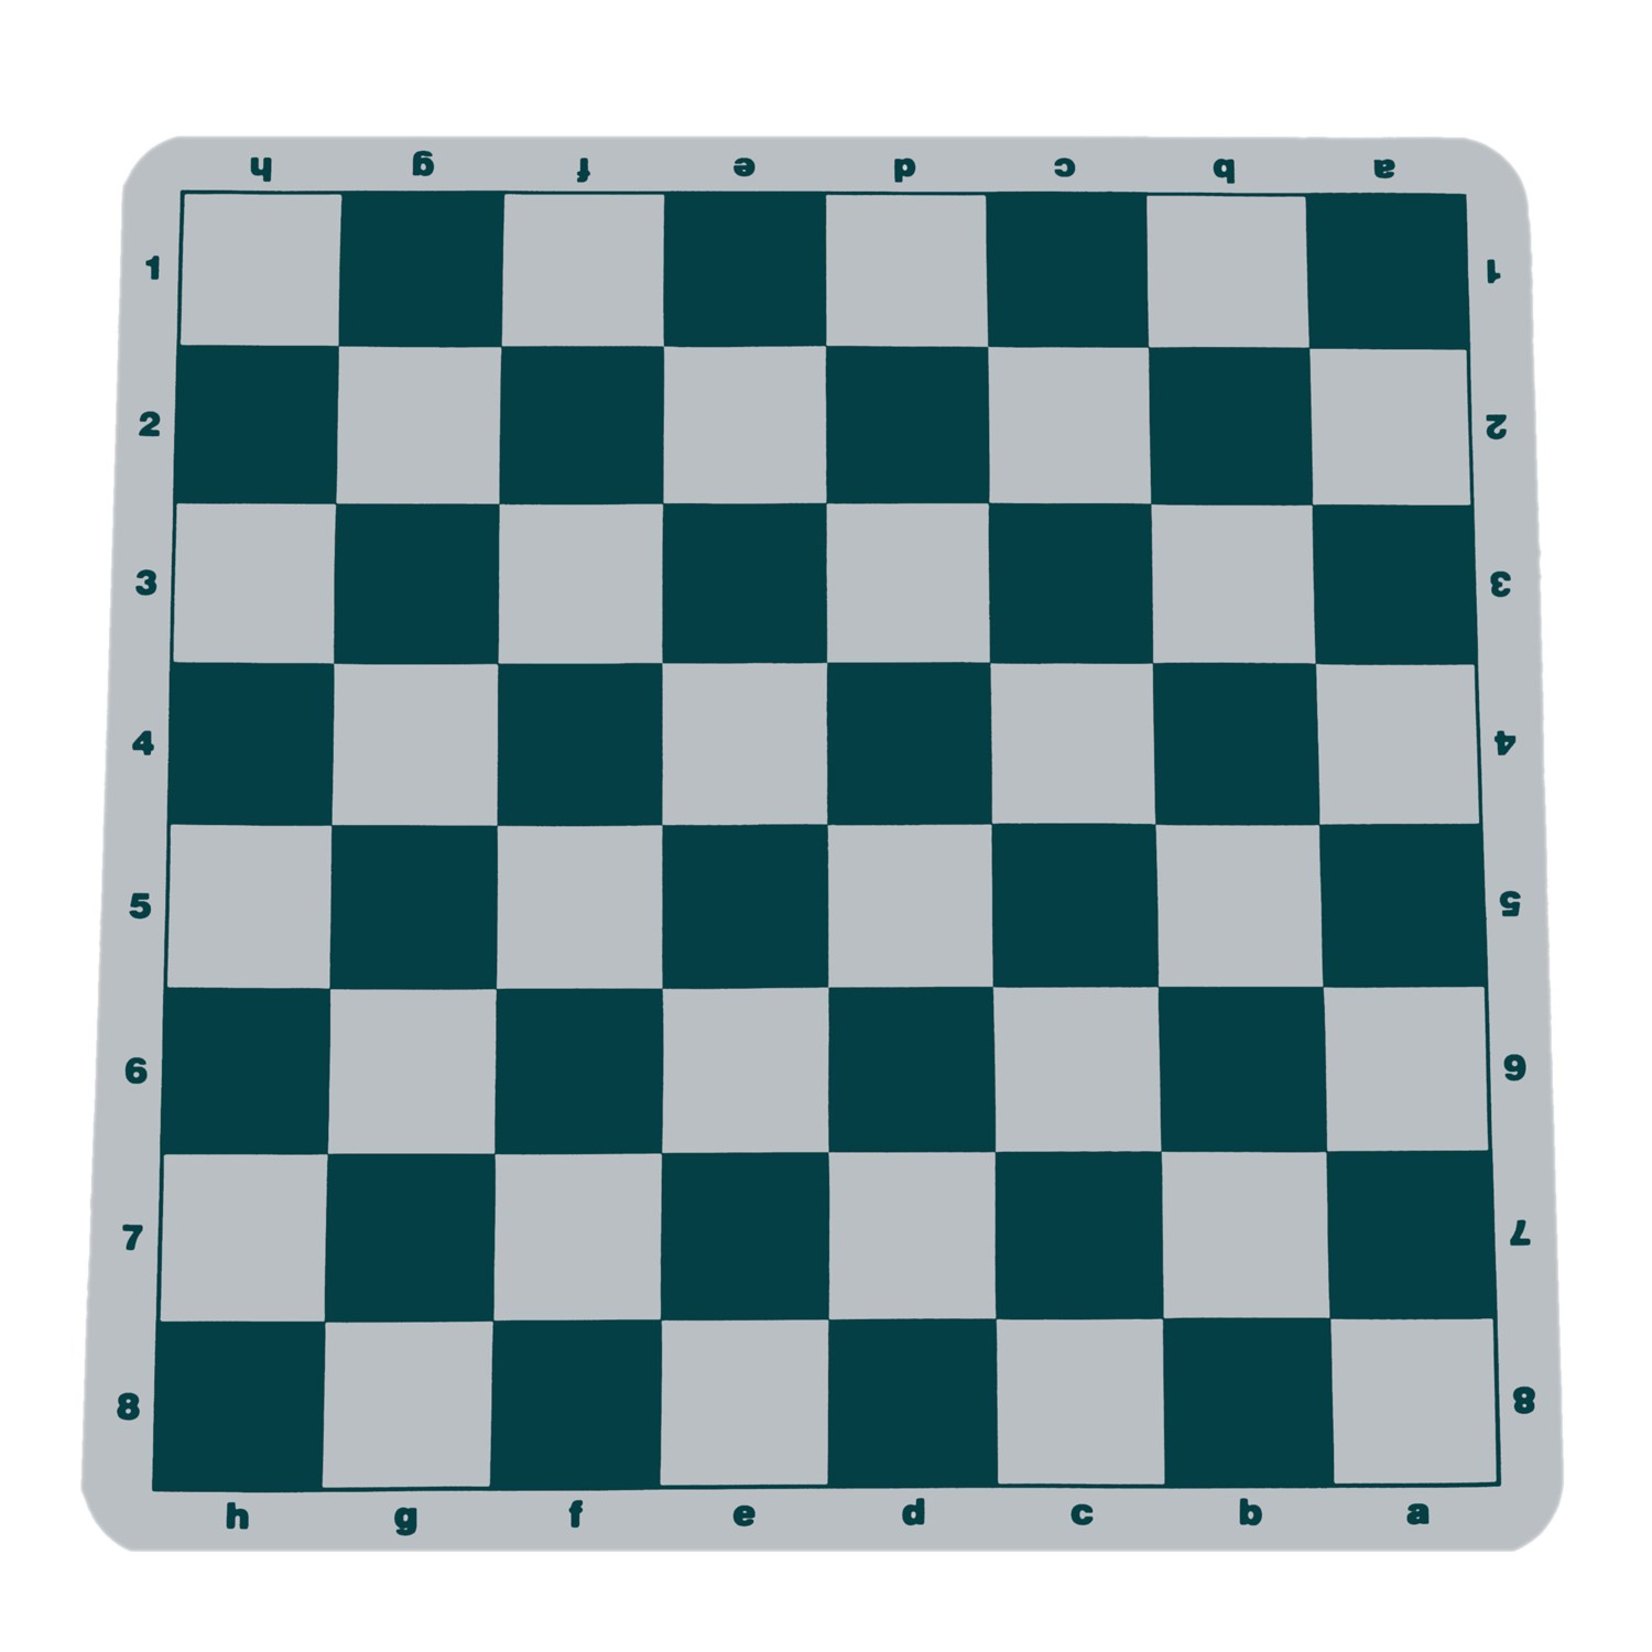 Wood Expressions Chess Board Green Silicone (Wood Expressions)